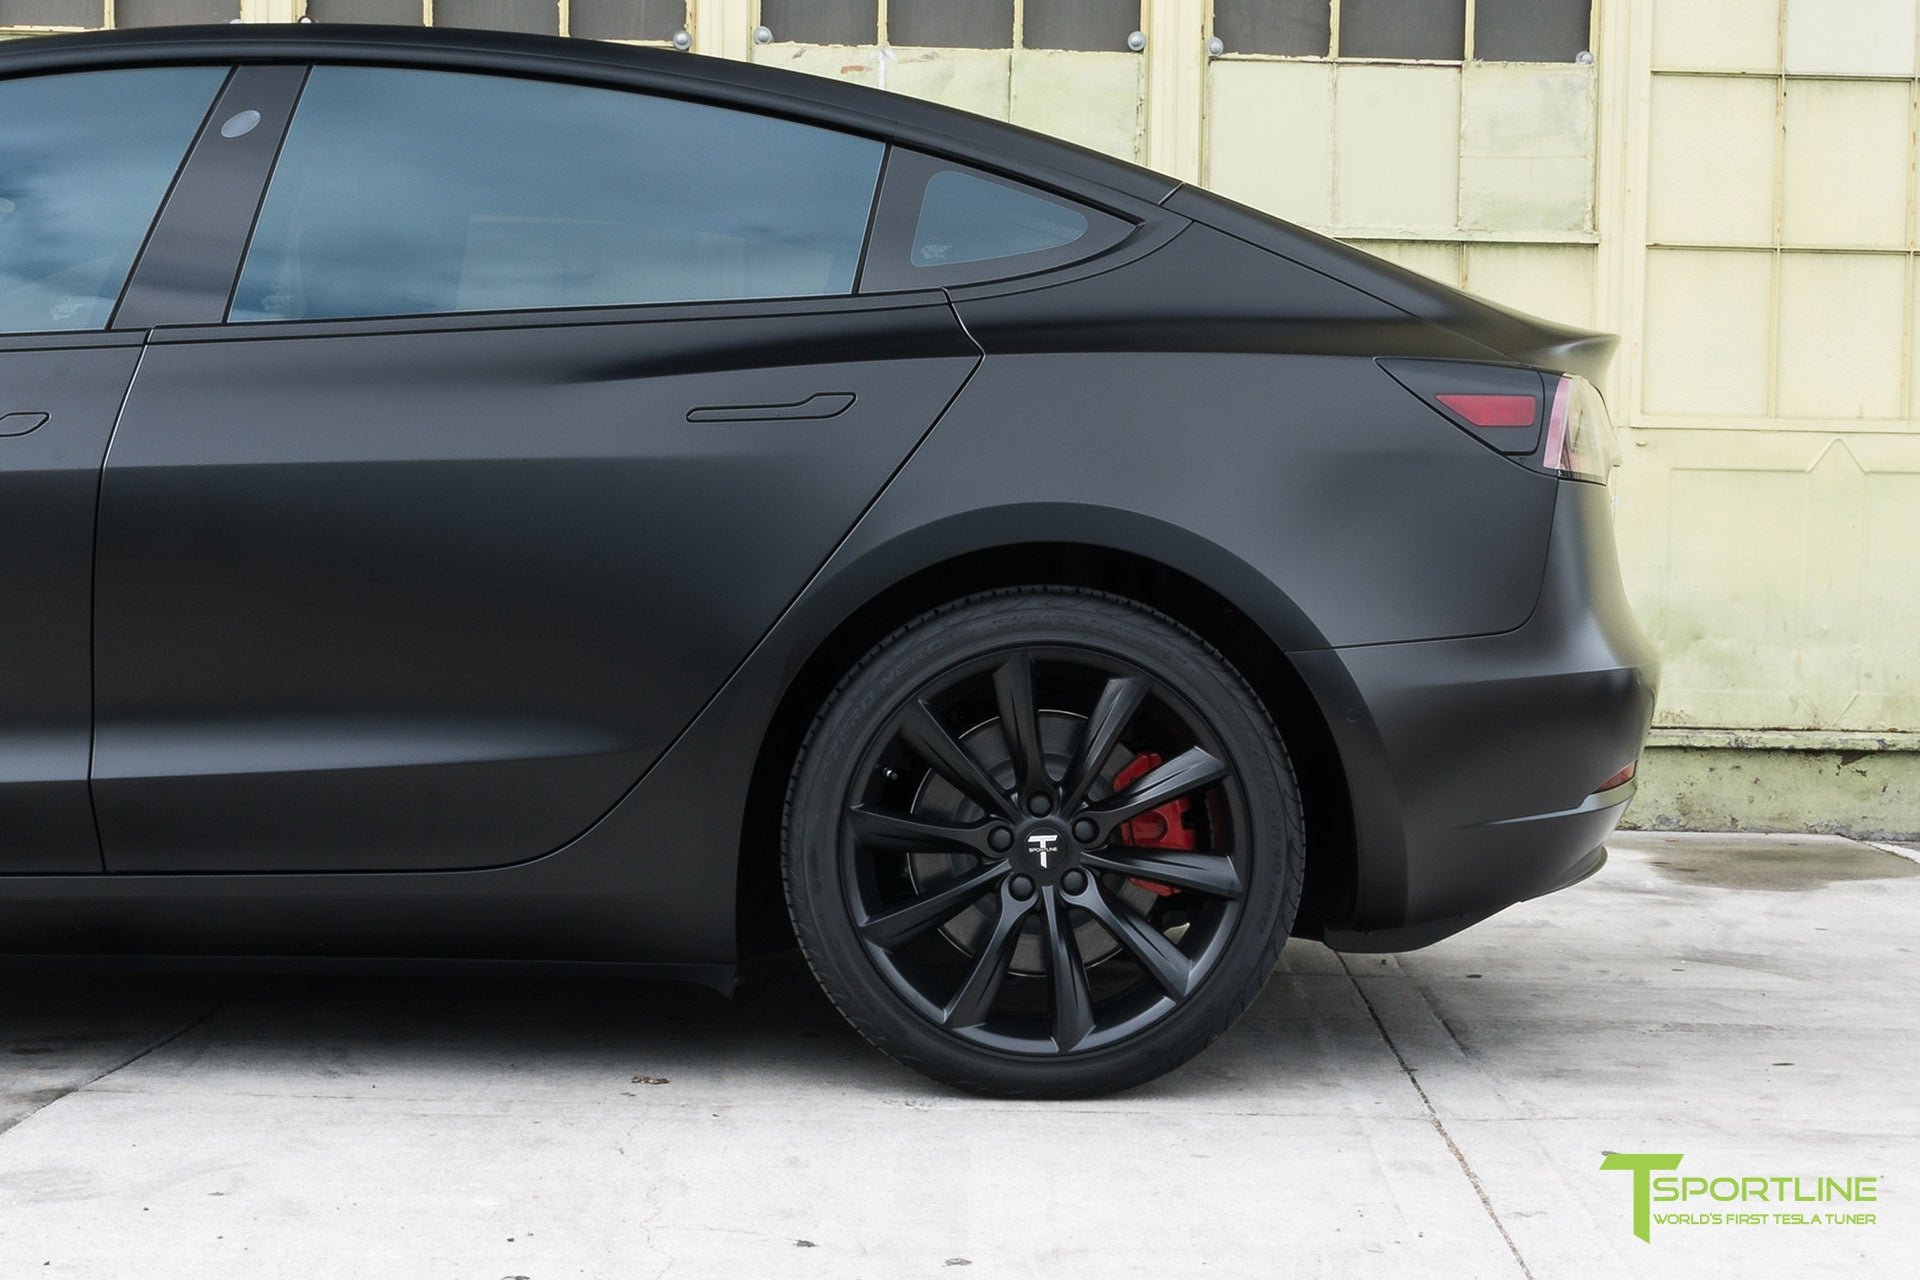 Satin Black Tesla Model 3 with Satin Black Chrome Delete, Window Tint, Matte Black 19 inch Turbine Style TST Wheels, and Lug Nut Cover by T Sportline 1